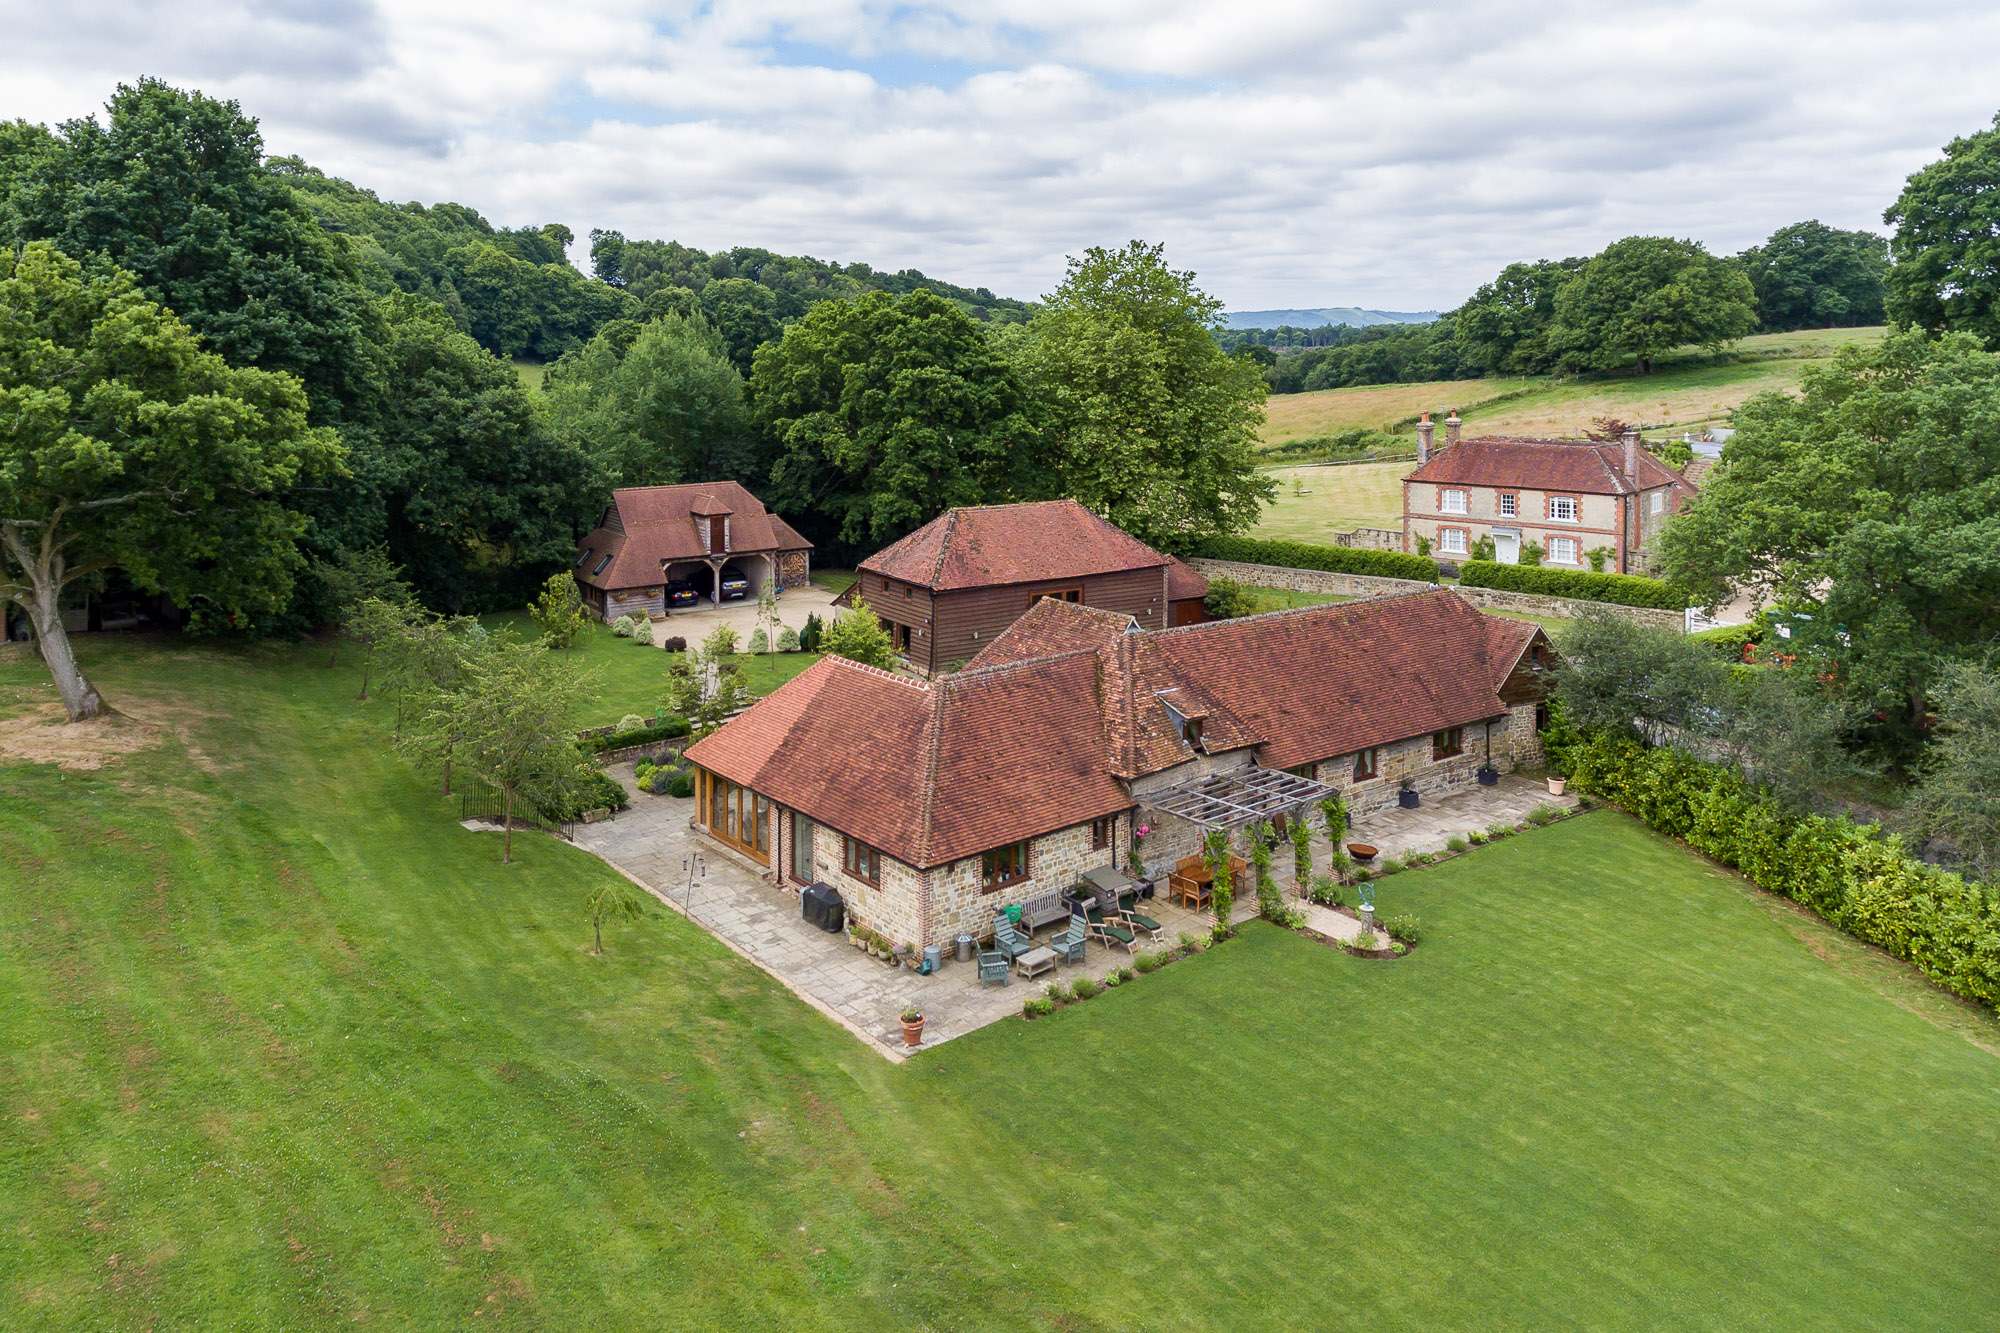 jonathan bond aerial photographer, aerial drone view of residential house